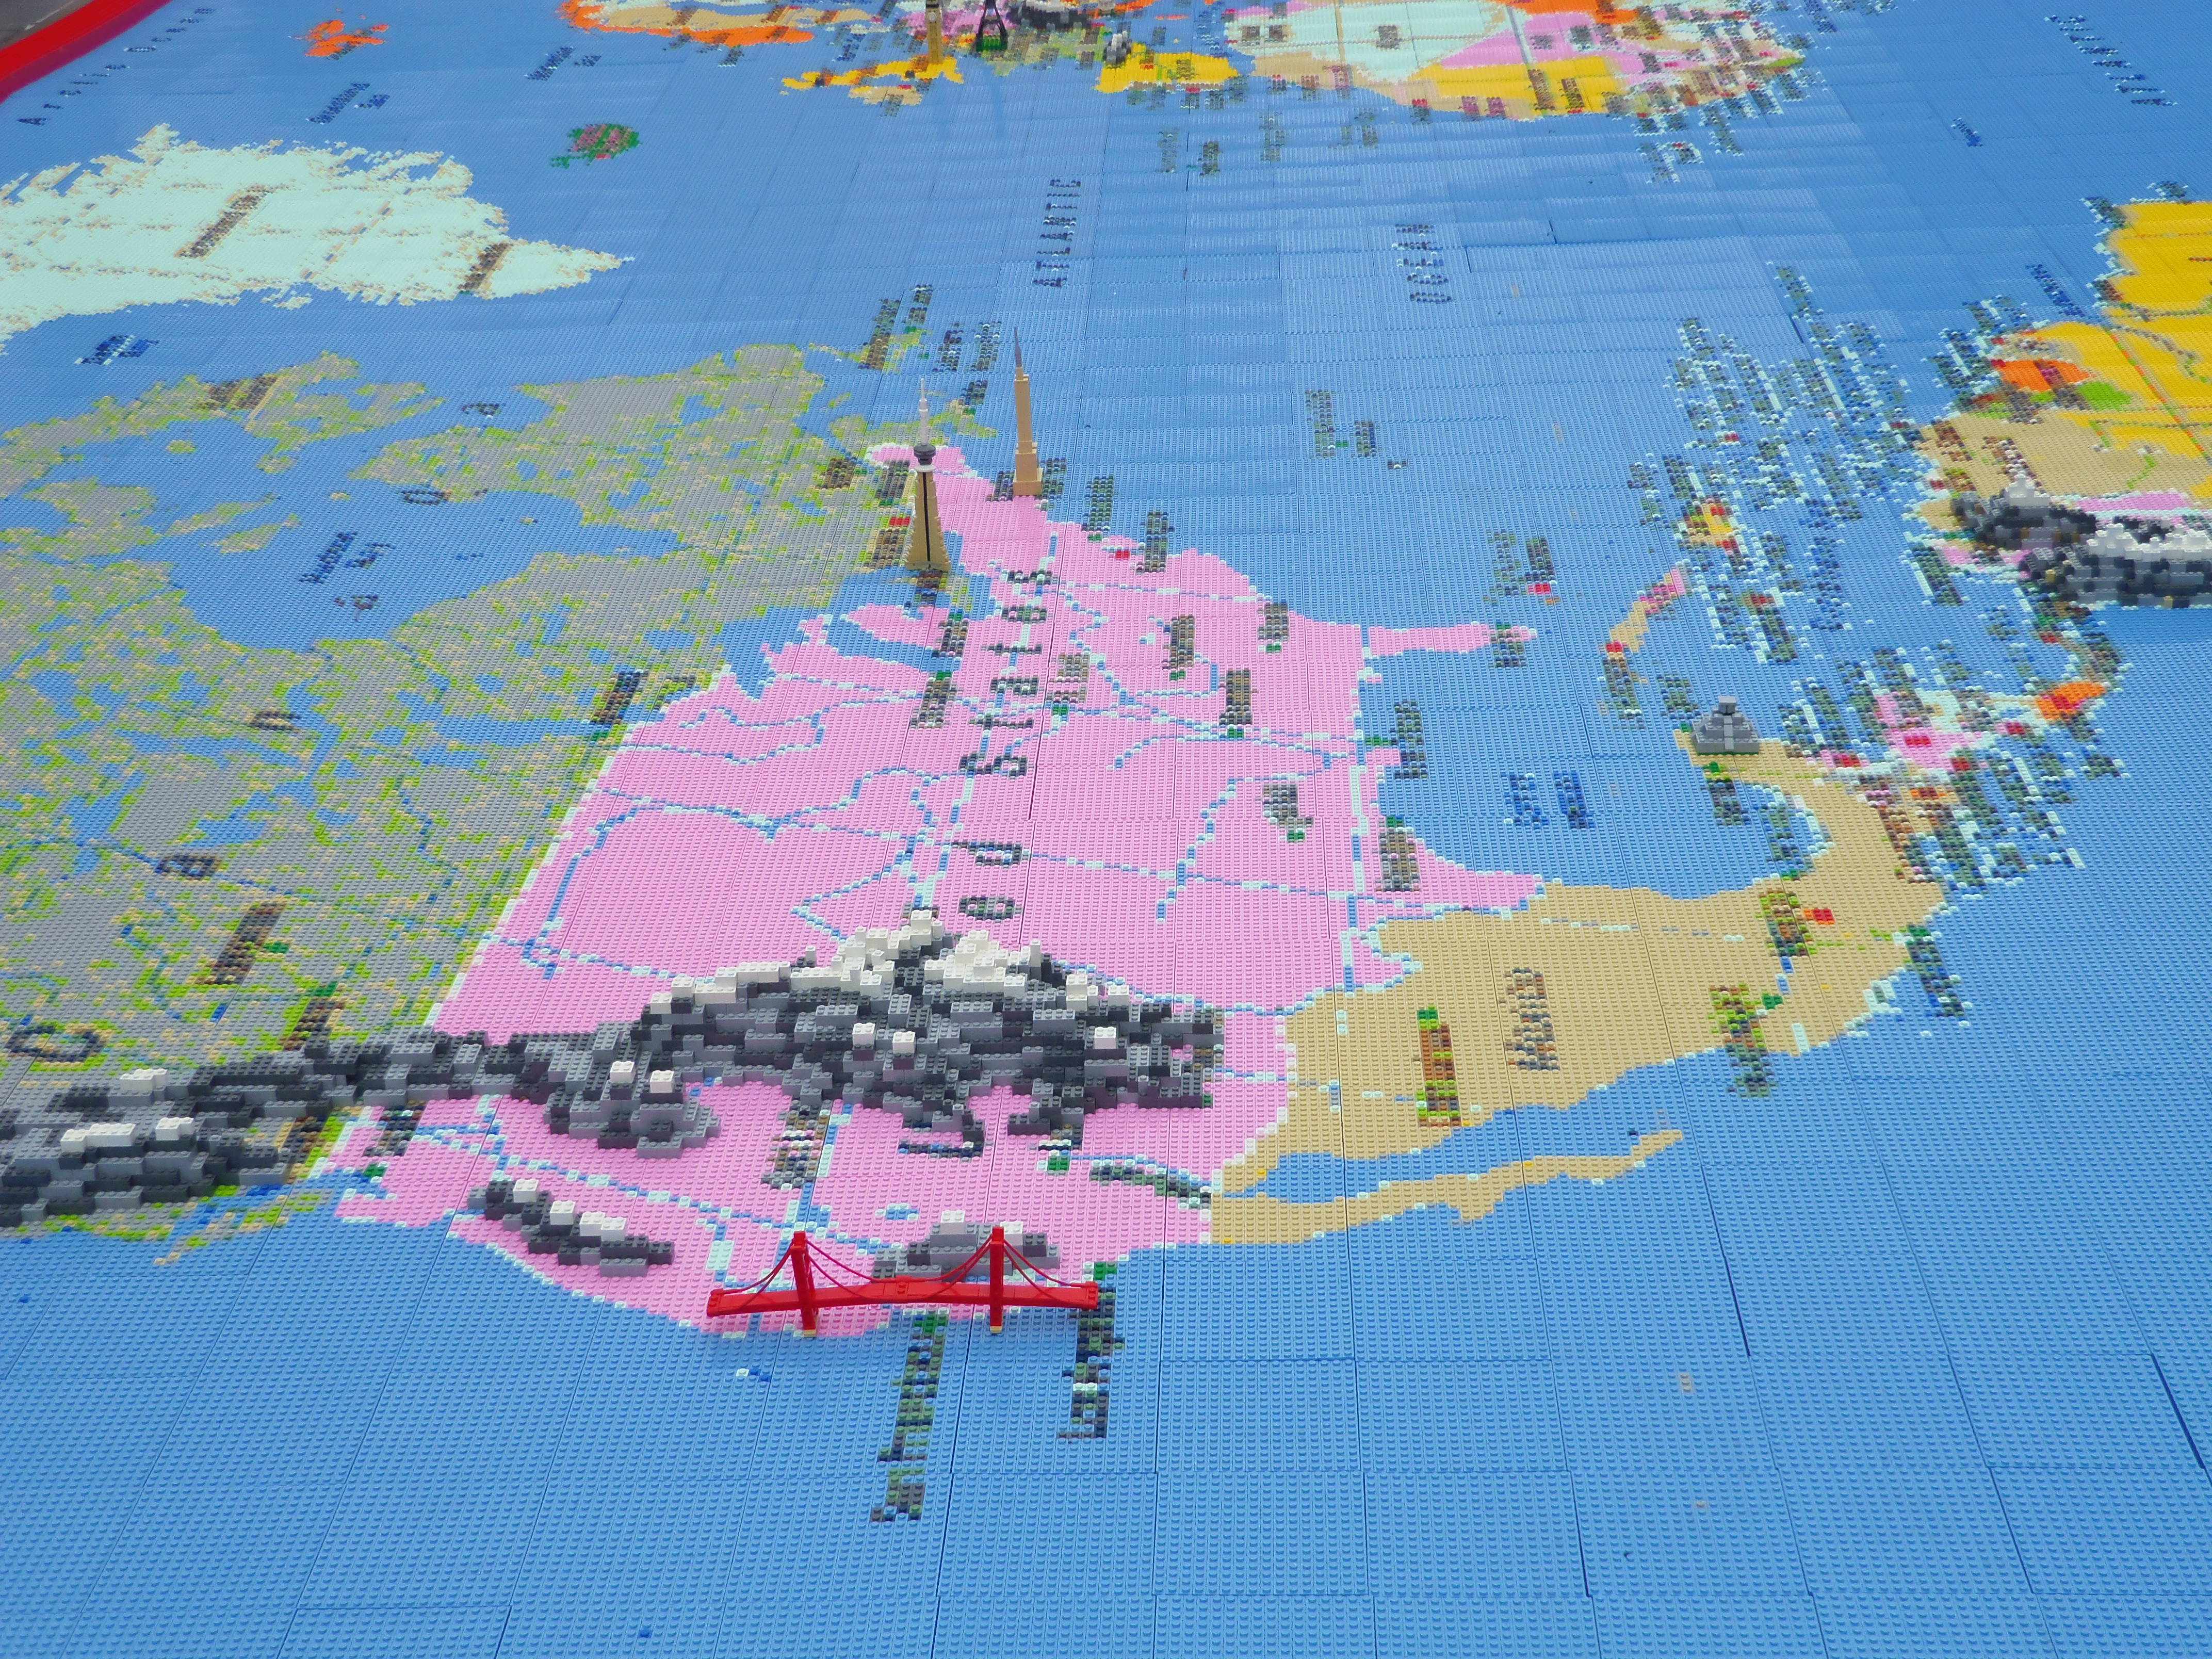 Giant World Map made out of Lego in London